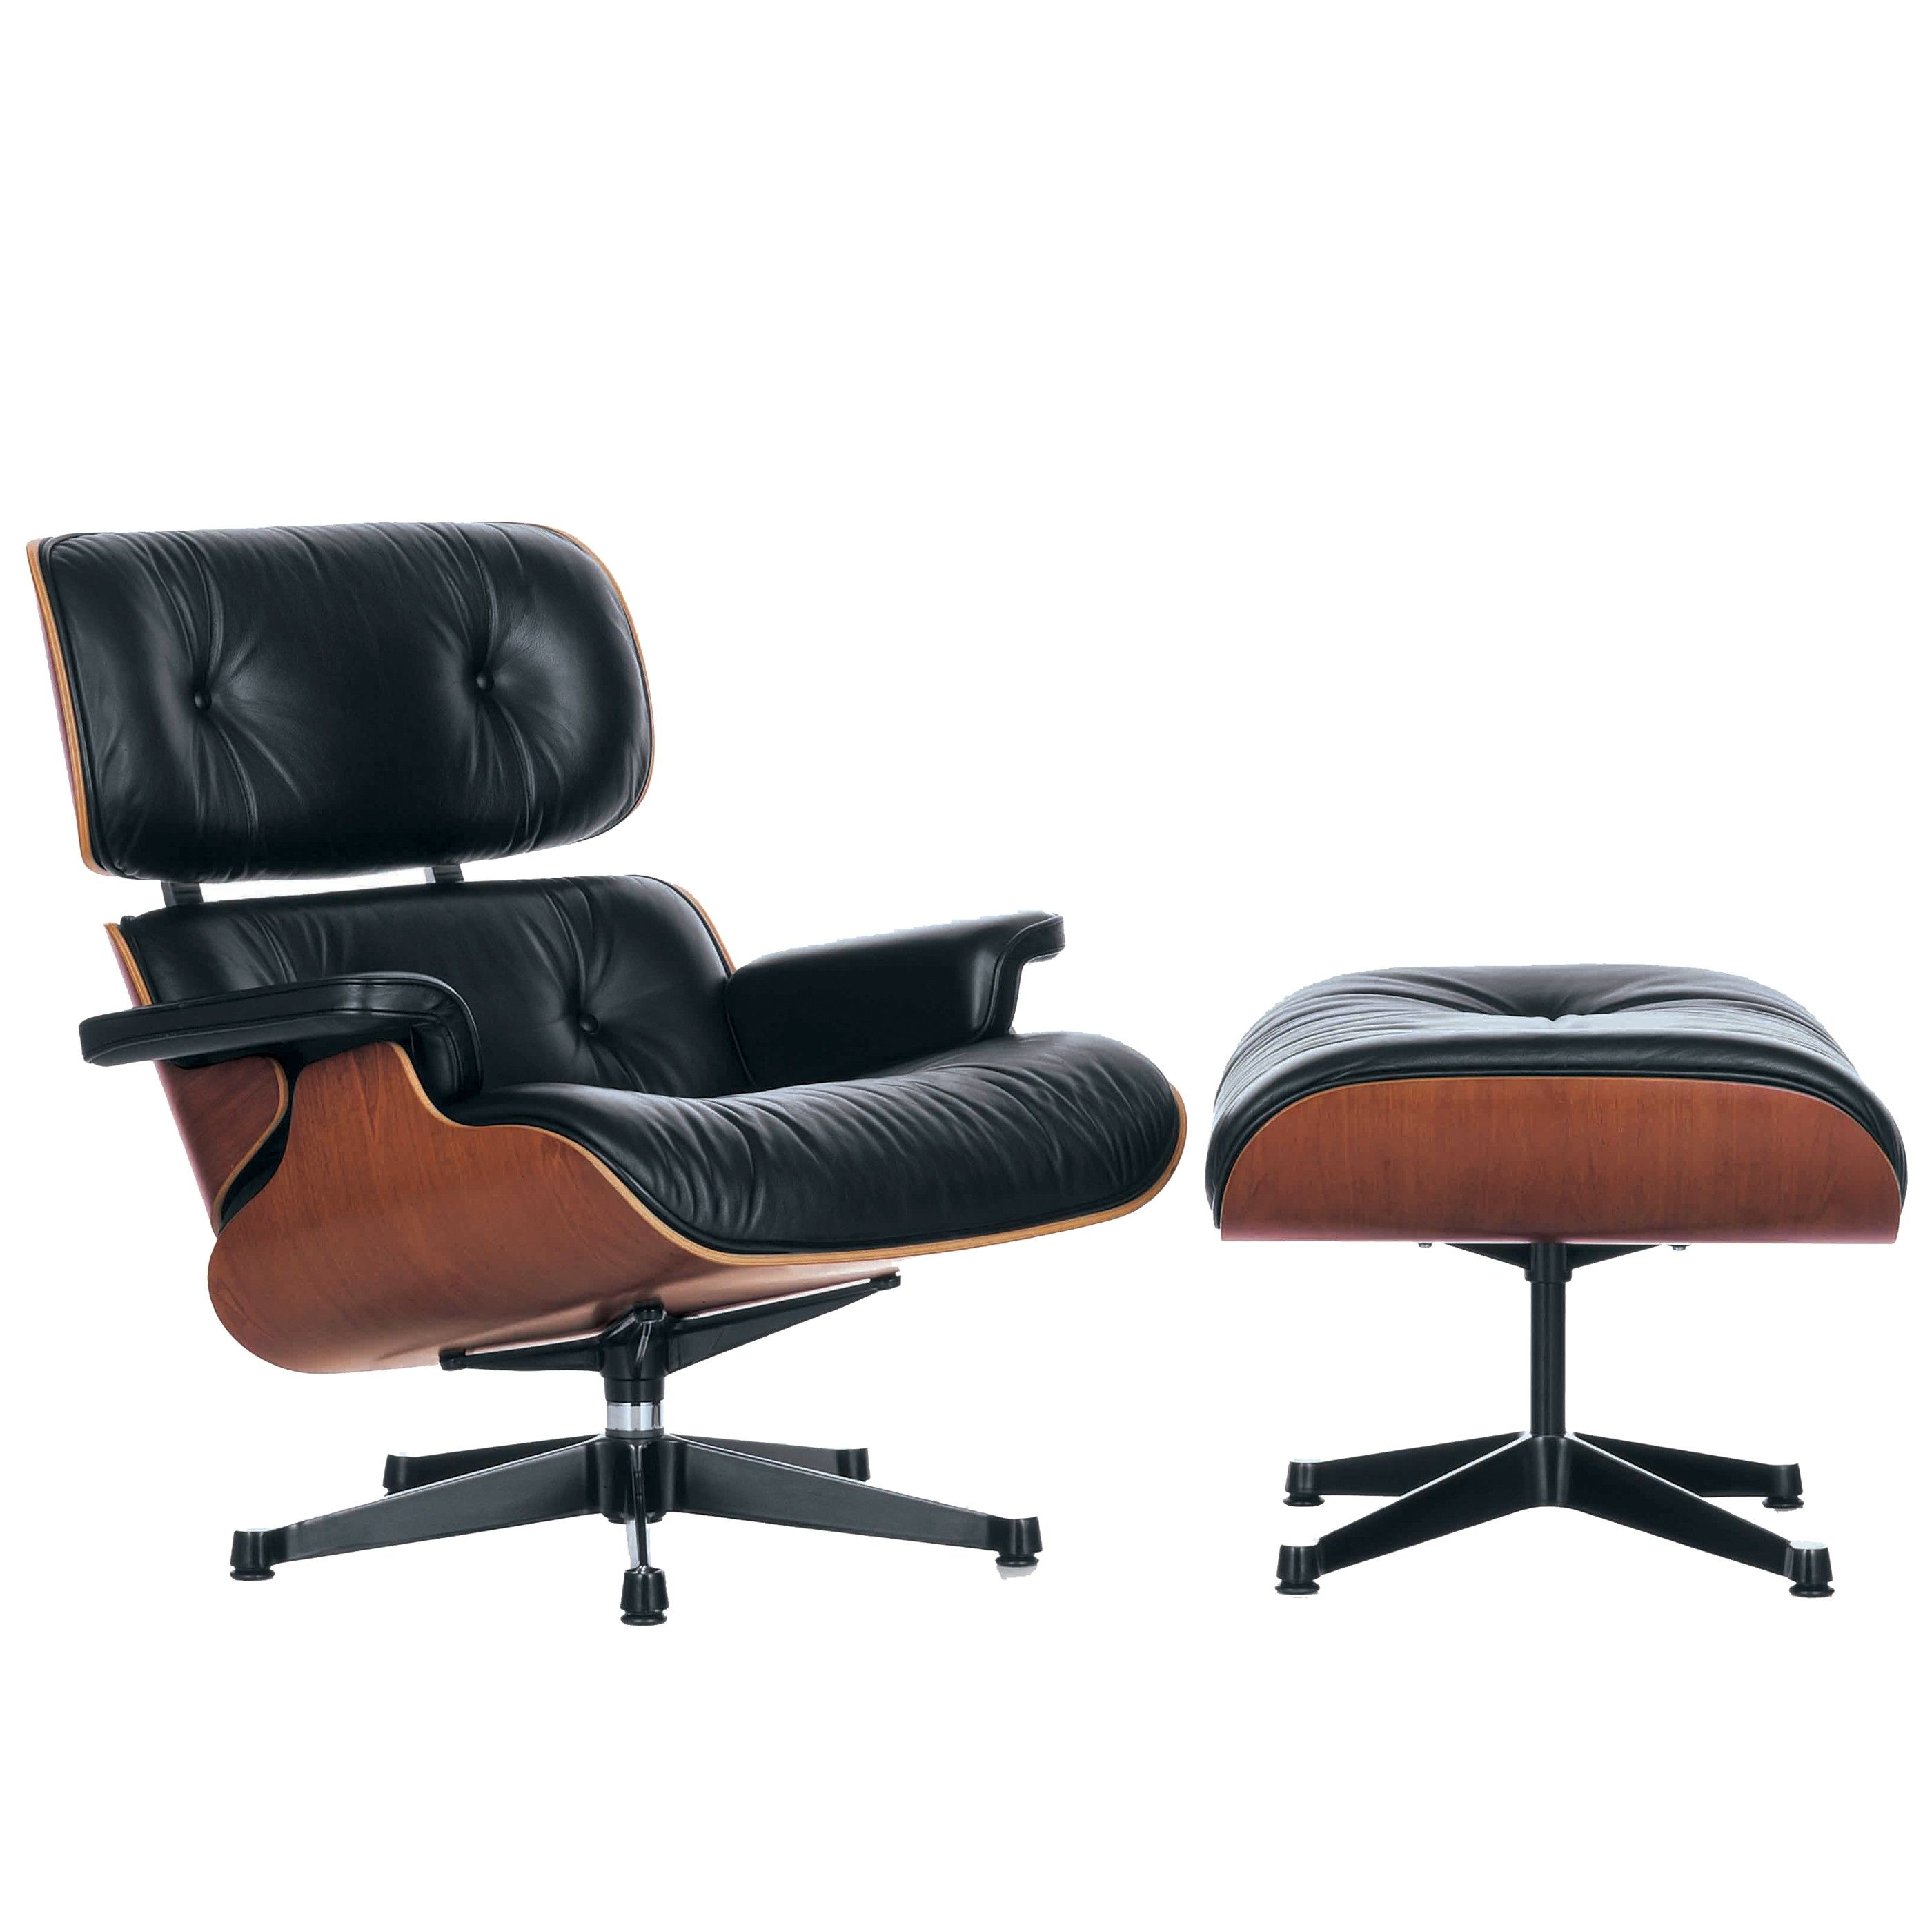 Vitra eames lounge chair met ottoman loungestoel for Fauteuil eames imitation